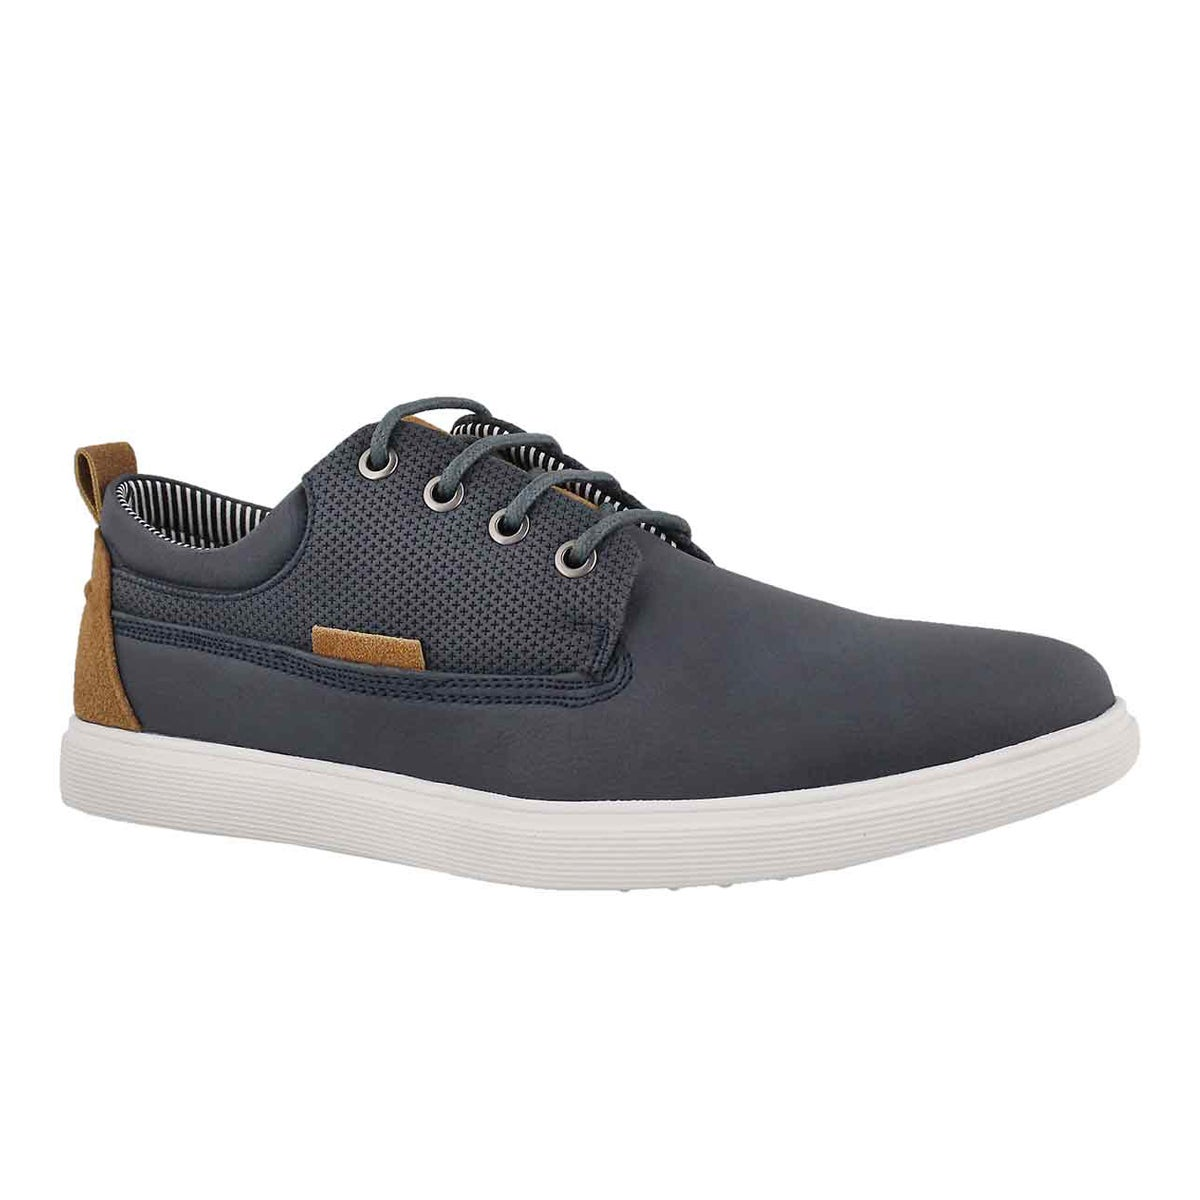 Men's RANGLE navy lace up casual oxfords